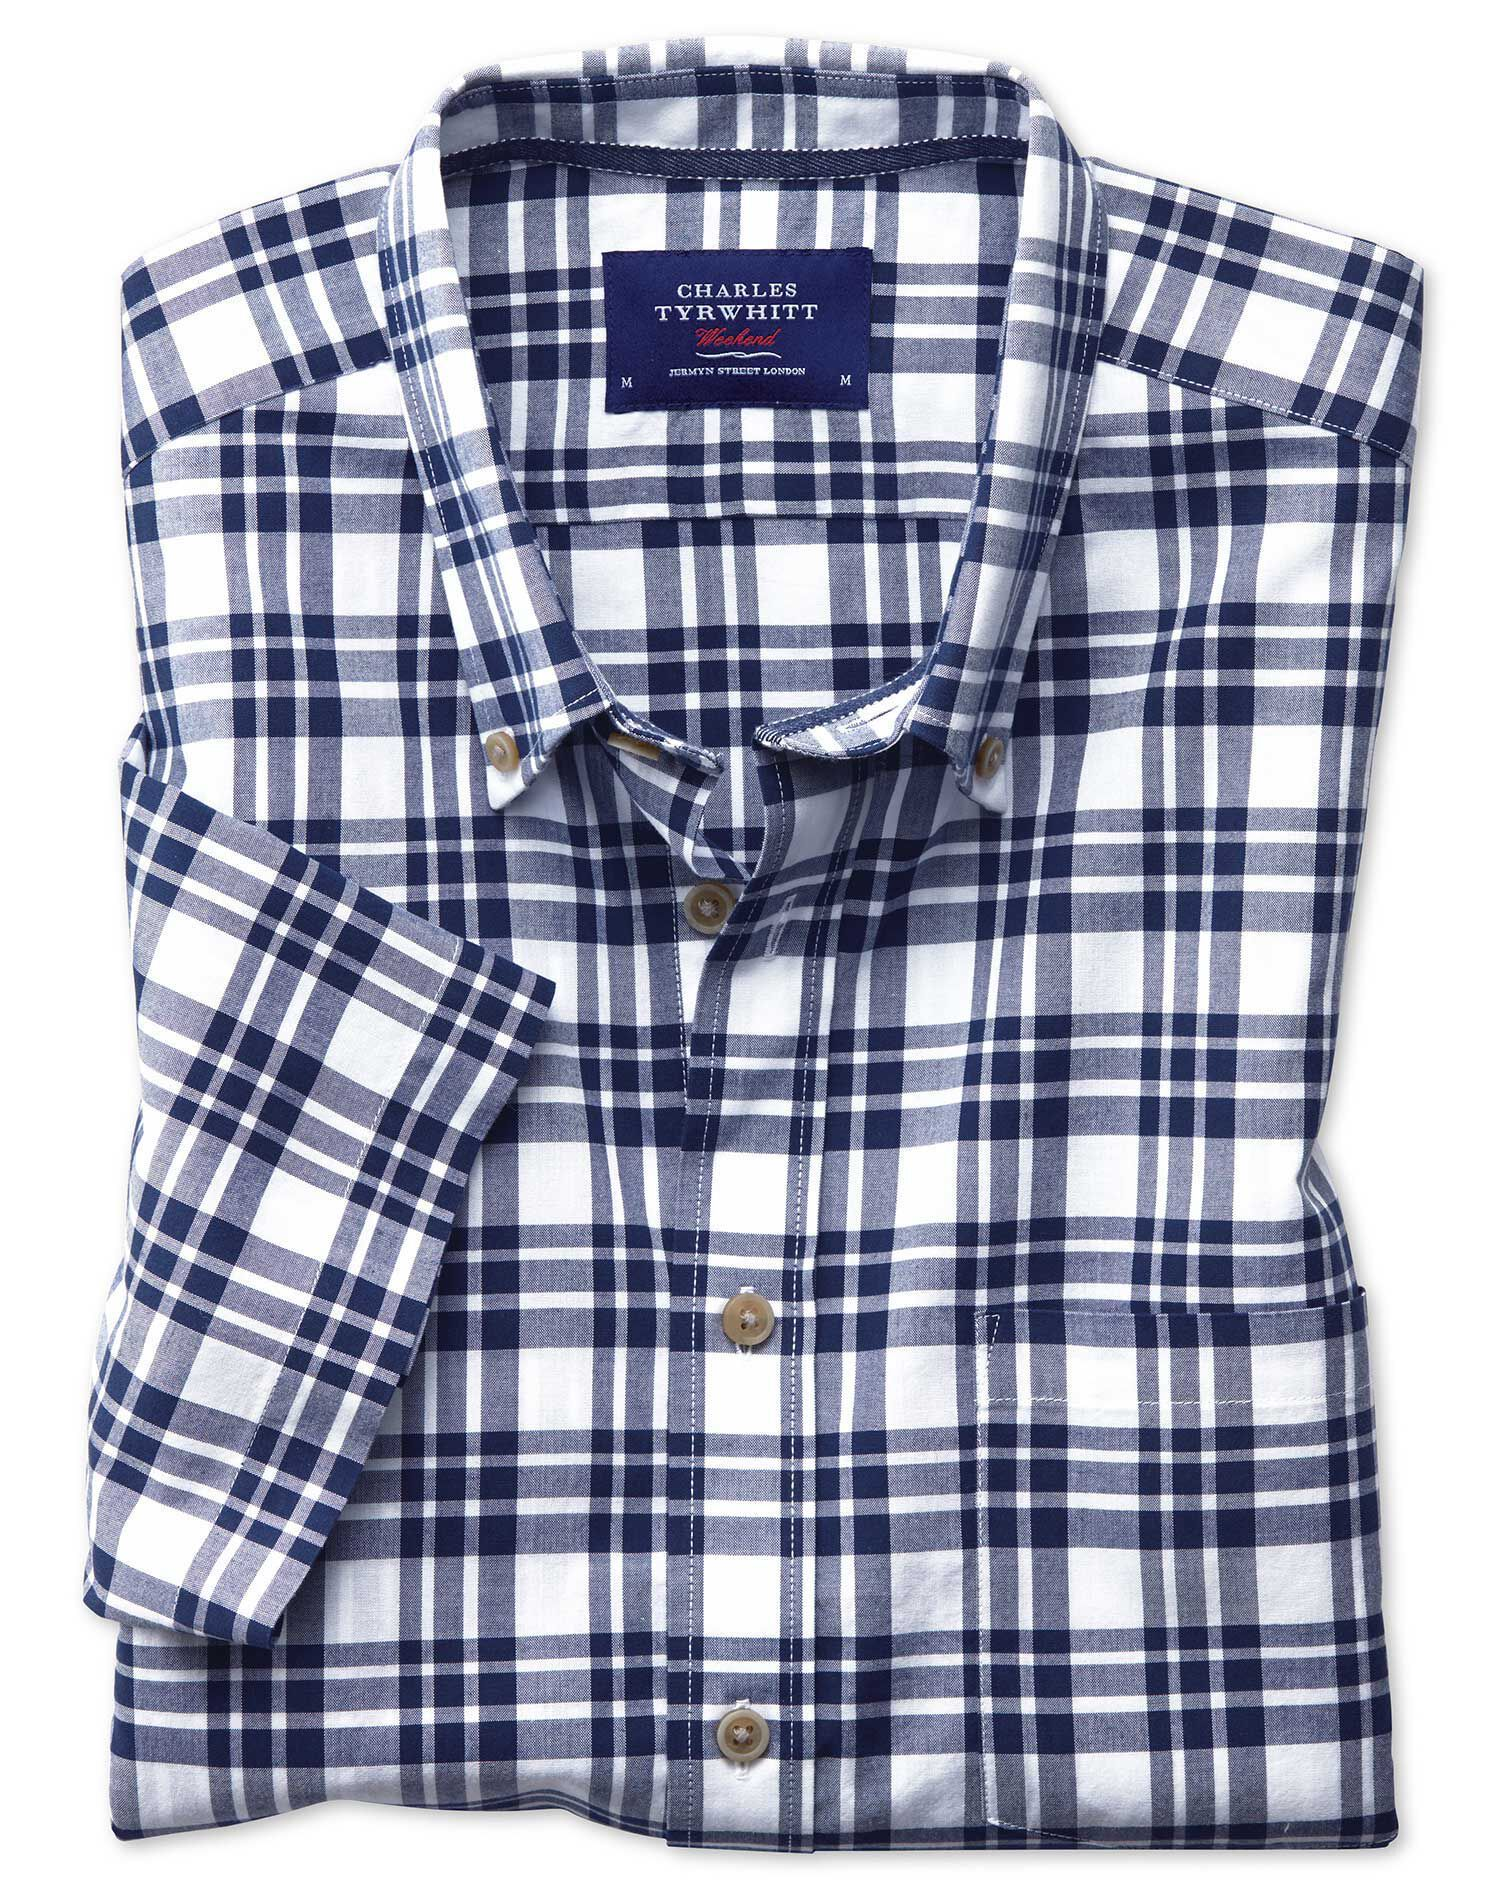 Slim Fit Button-Down Poplin Short Sleeve Navy Blue Check Cotton Shirt Single Cuff Size Medium by Cha